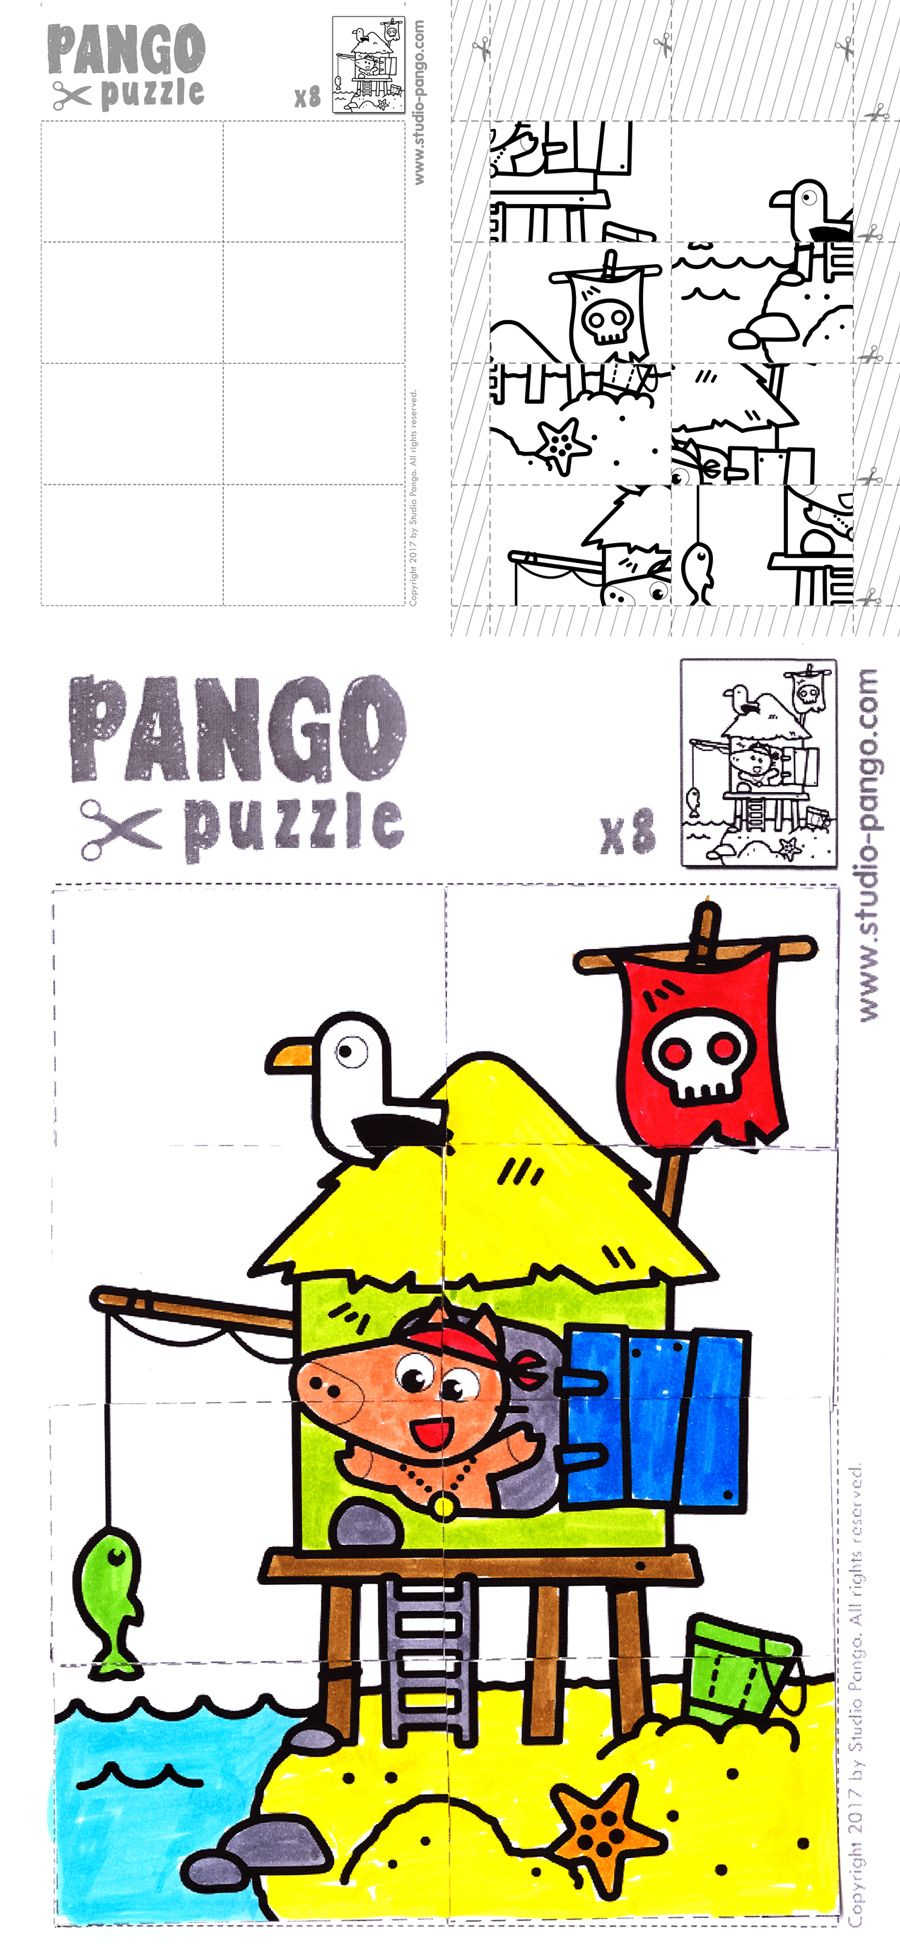 Pirate Island Jigsaw Puzzle #8 #pieces #jigsaw | Pango Printable - 8 Piece Puzzle Printable